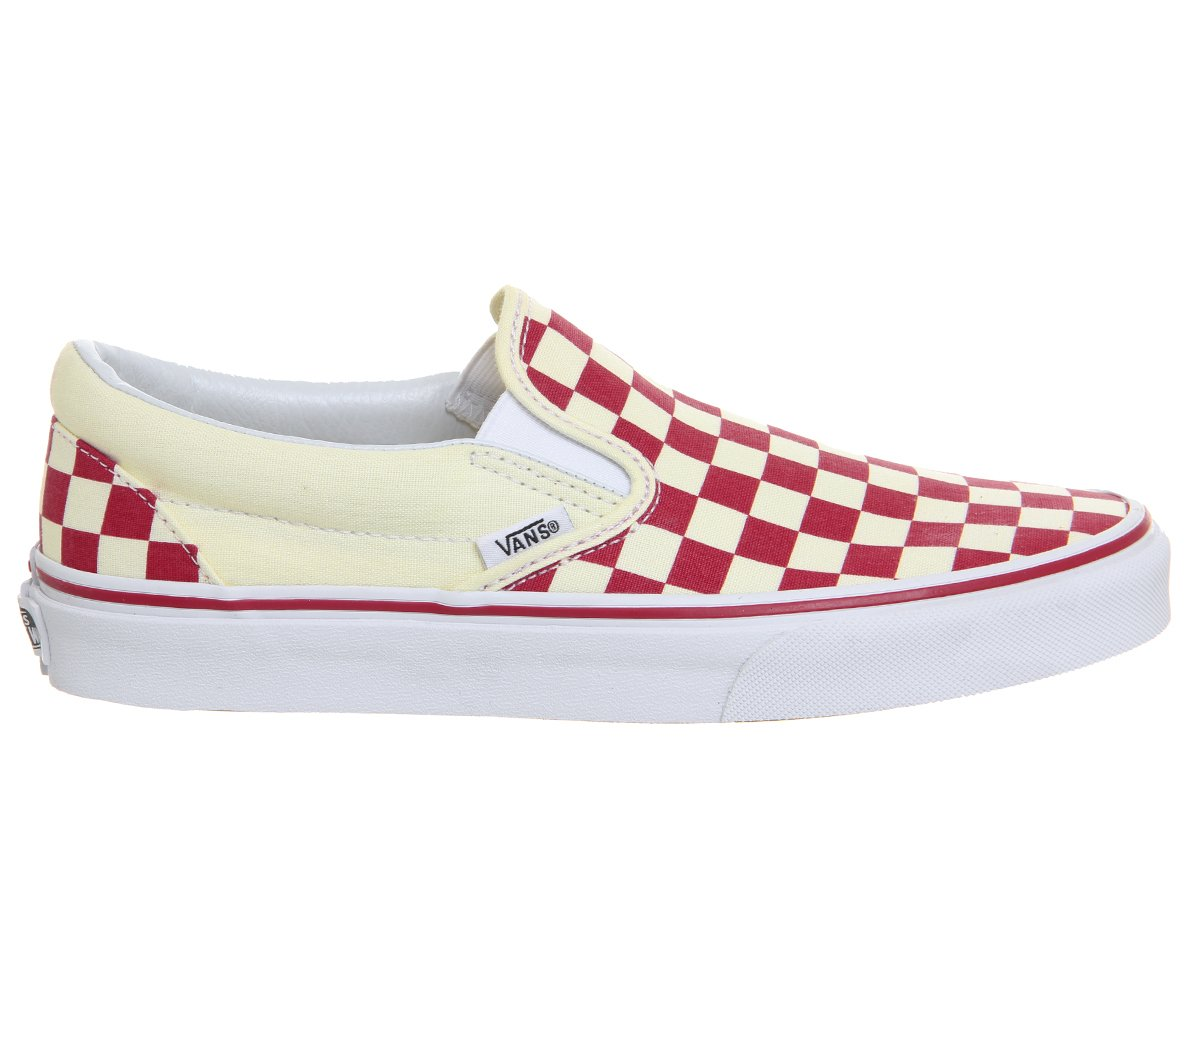 [バンズ] VANS スニーカー Classic Slip-on B0785XM7TS 6.5 B(M) US Women / 5 D(M) US Men|( Primary Checker) Racing Red / White ( Primary Checker) Racing Red / White 6.5 B(M) US Women / 5 D(M) US Men